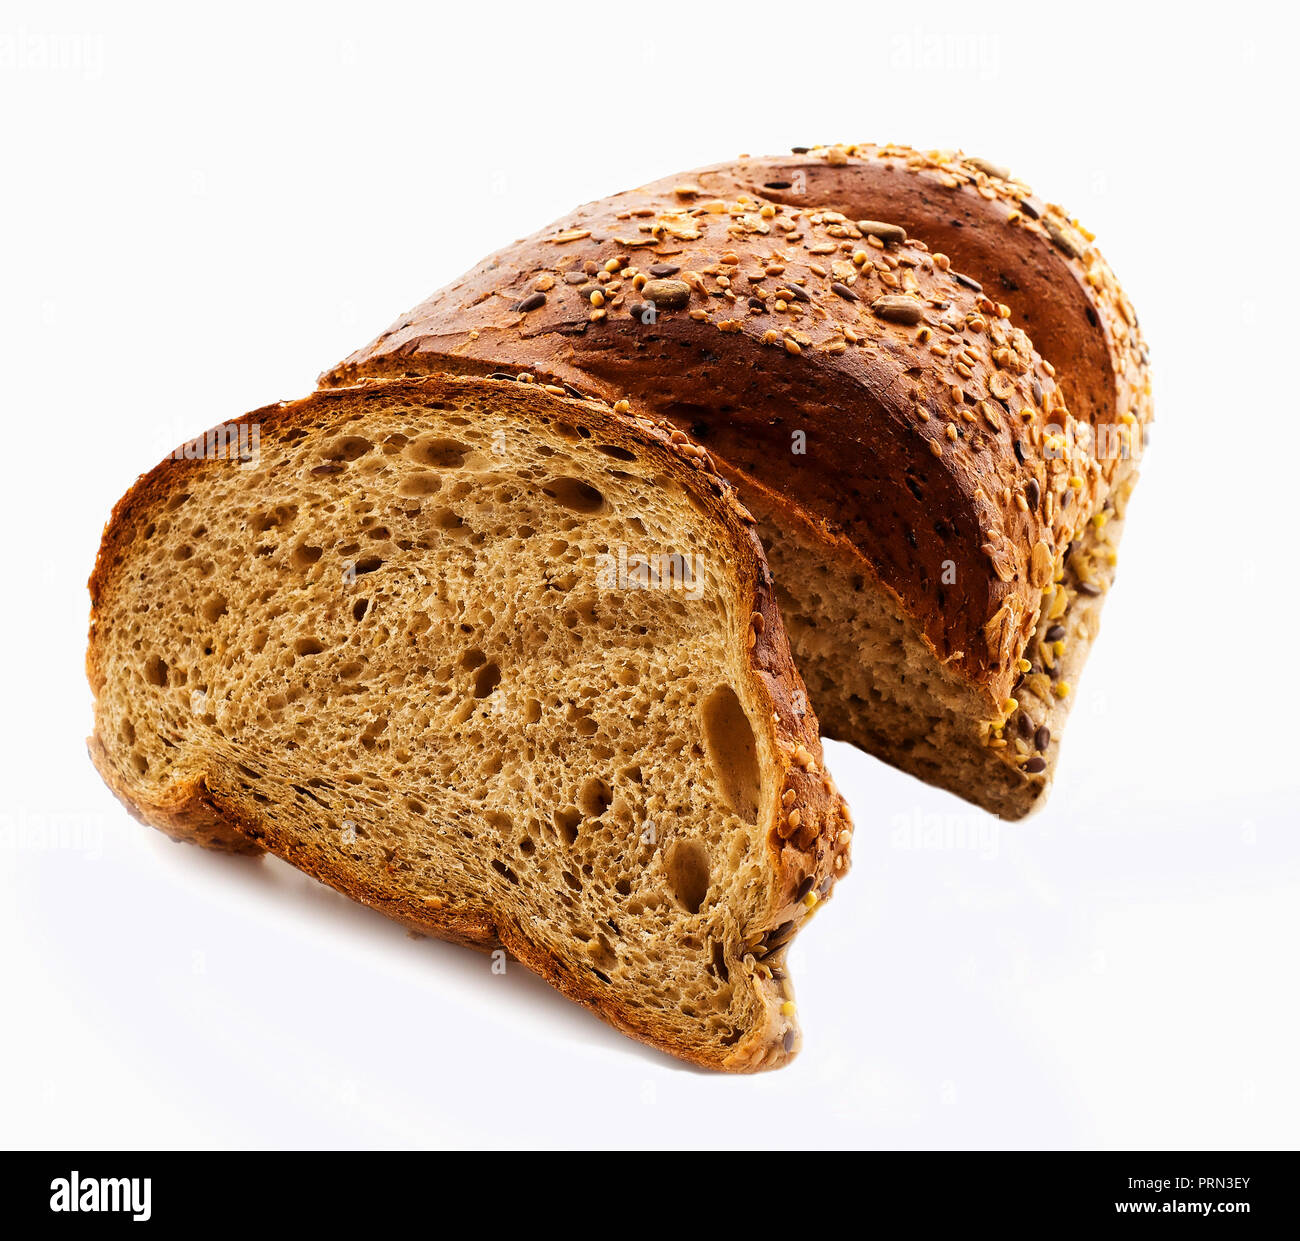 Top view of sliced wholegrain bread isolated over white background - Stock Image